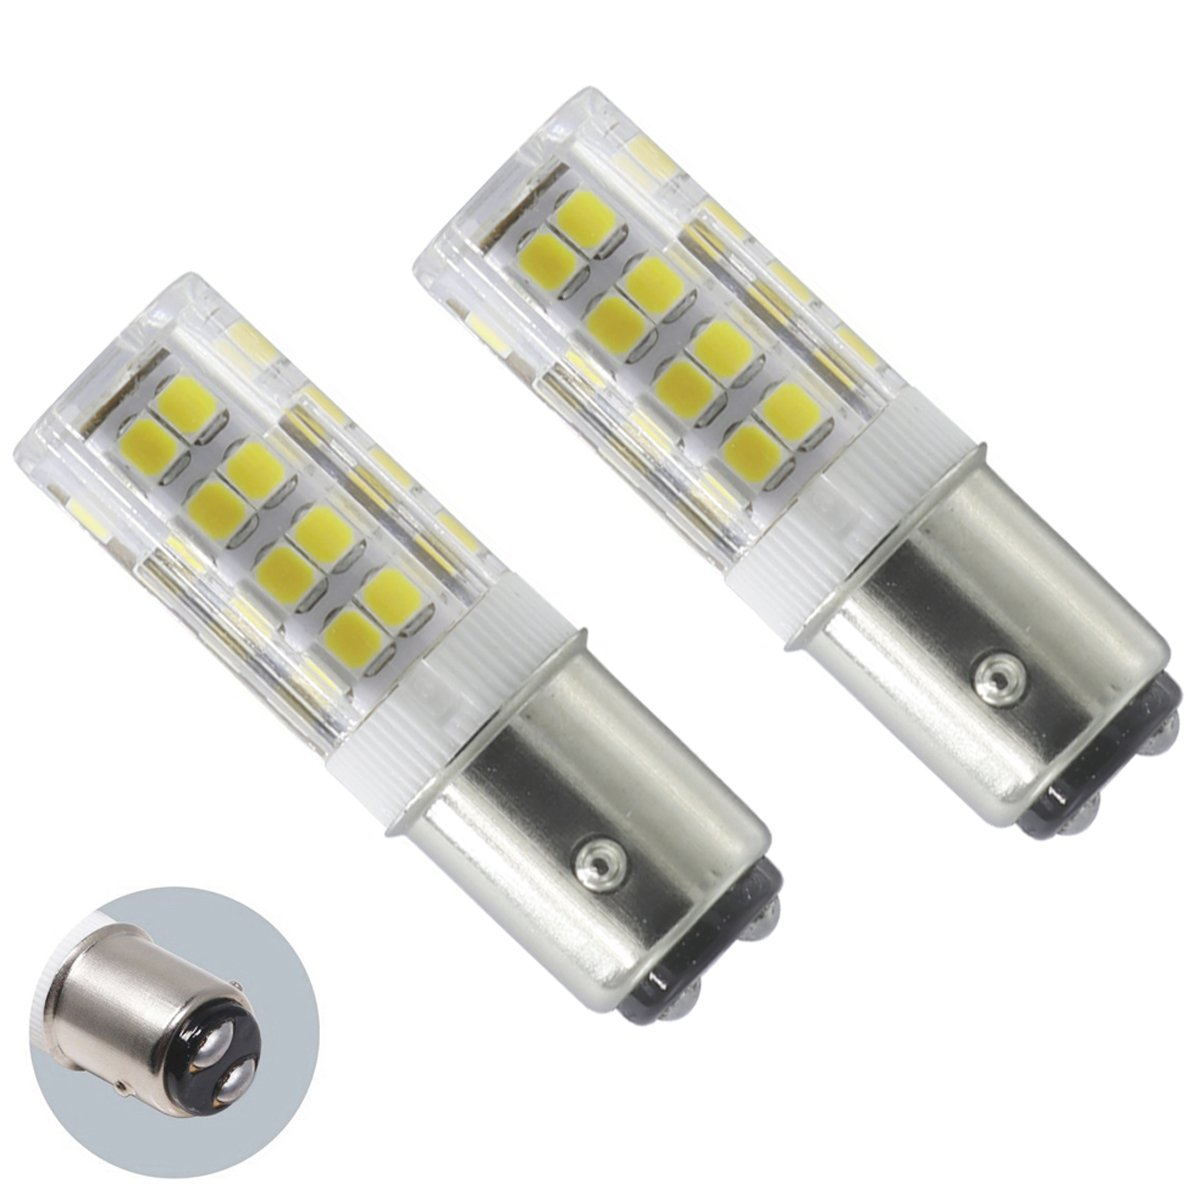 XRZT LED BA15D 120V Double Contact Bayonet Base, Dimmable 4.5W Daylight White (50W Halogen Bulbs Equivalent), T3/T4, Sewing Machine Lamp(2-pack)